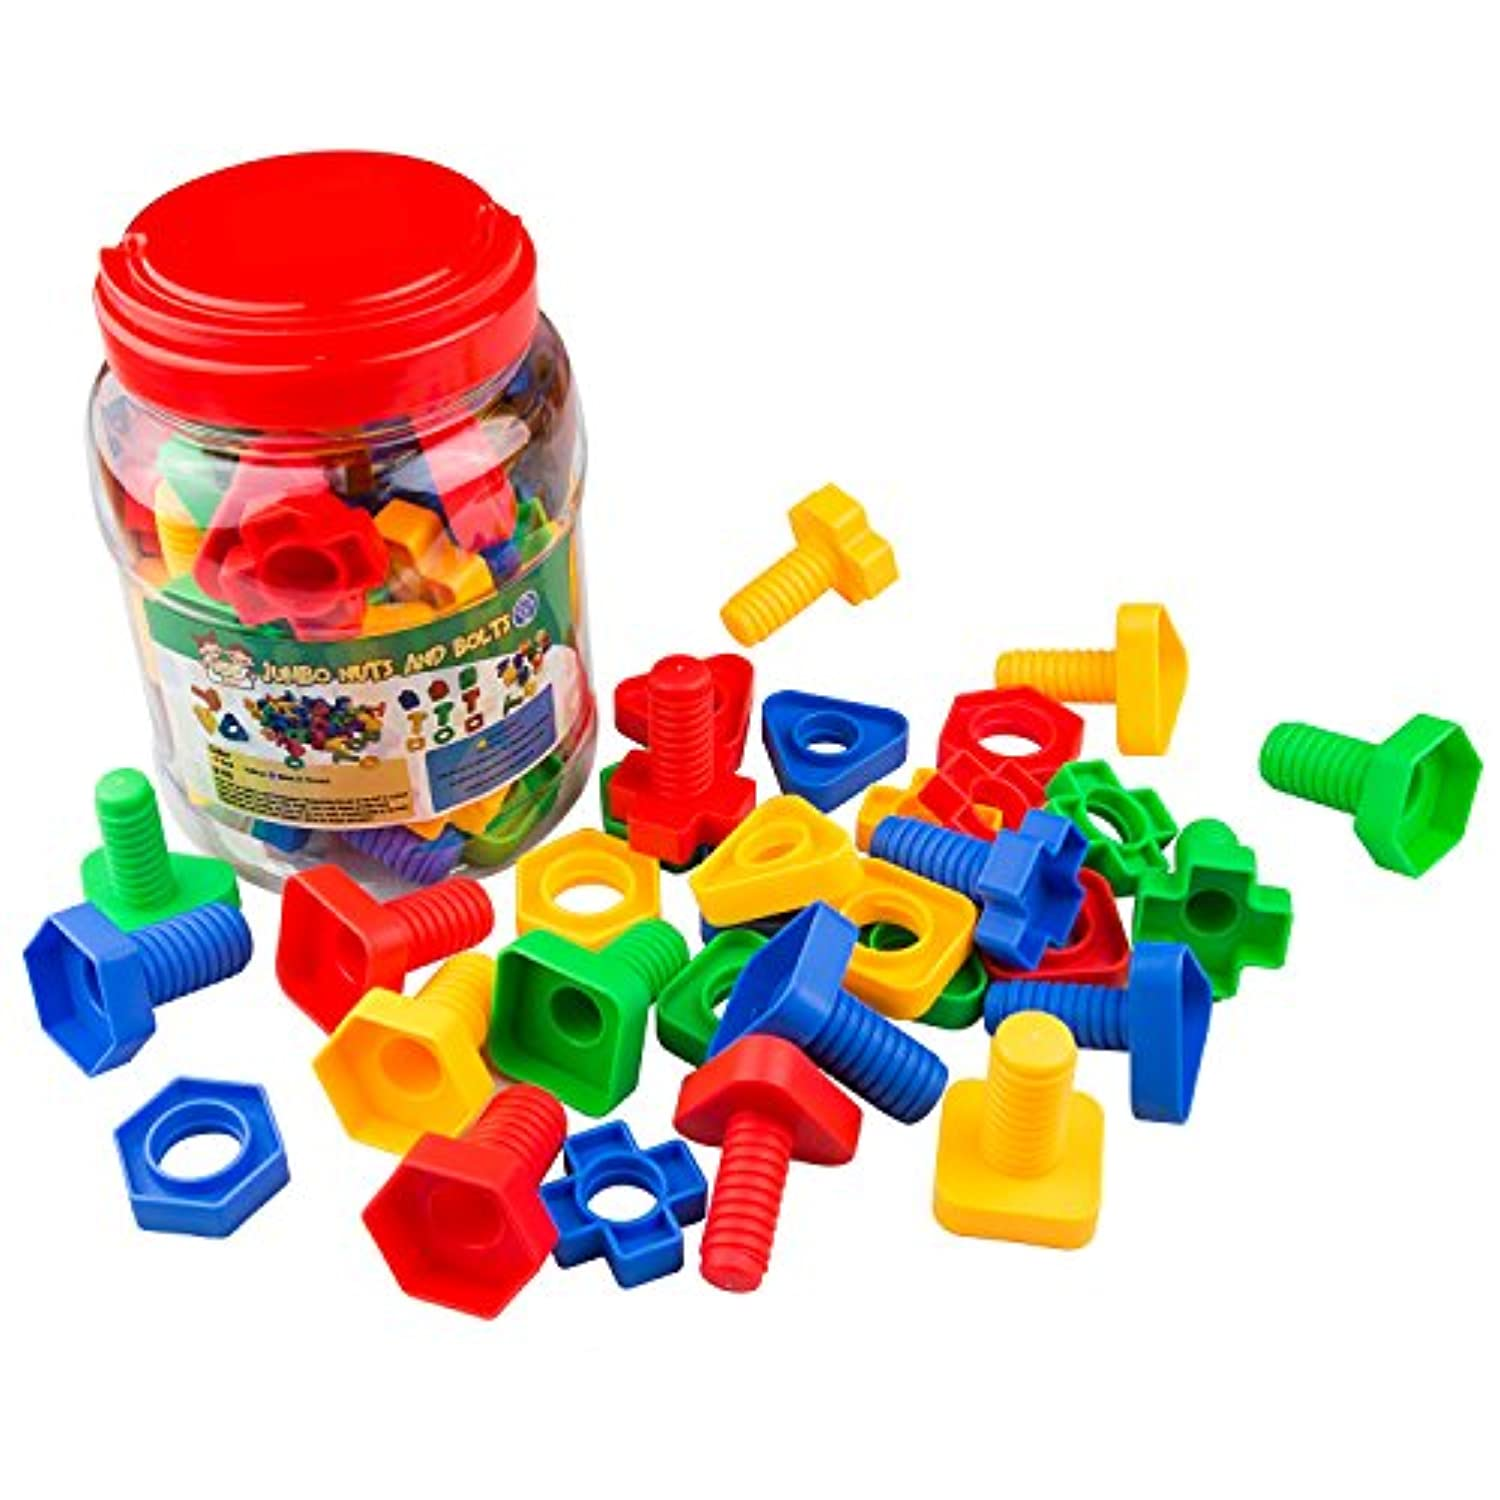 Jumbo Nuts & Bolts 32 pcs Sets - Stem Toys for Boys & Girls - Educational Toy for Baby & Toddler & 1 2 3 Year Olds Kids - Learning Colours & Shapes - Improving Matching & Motor Skills